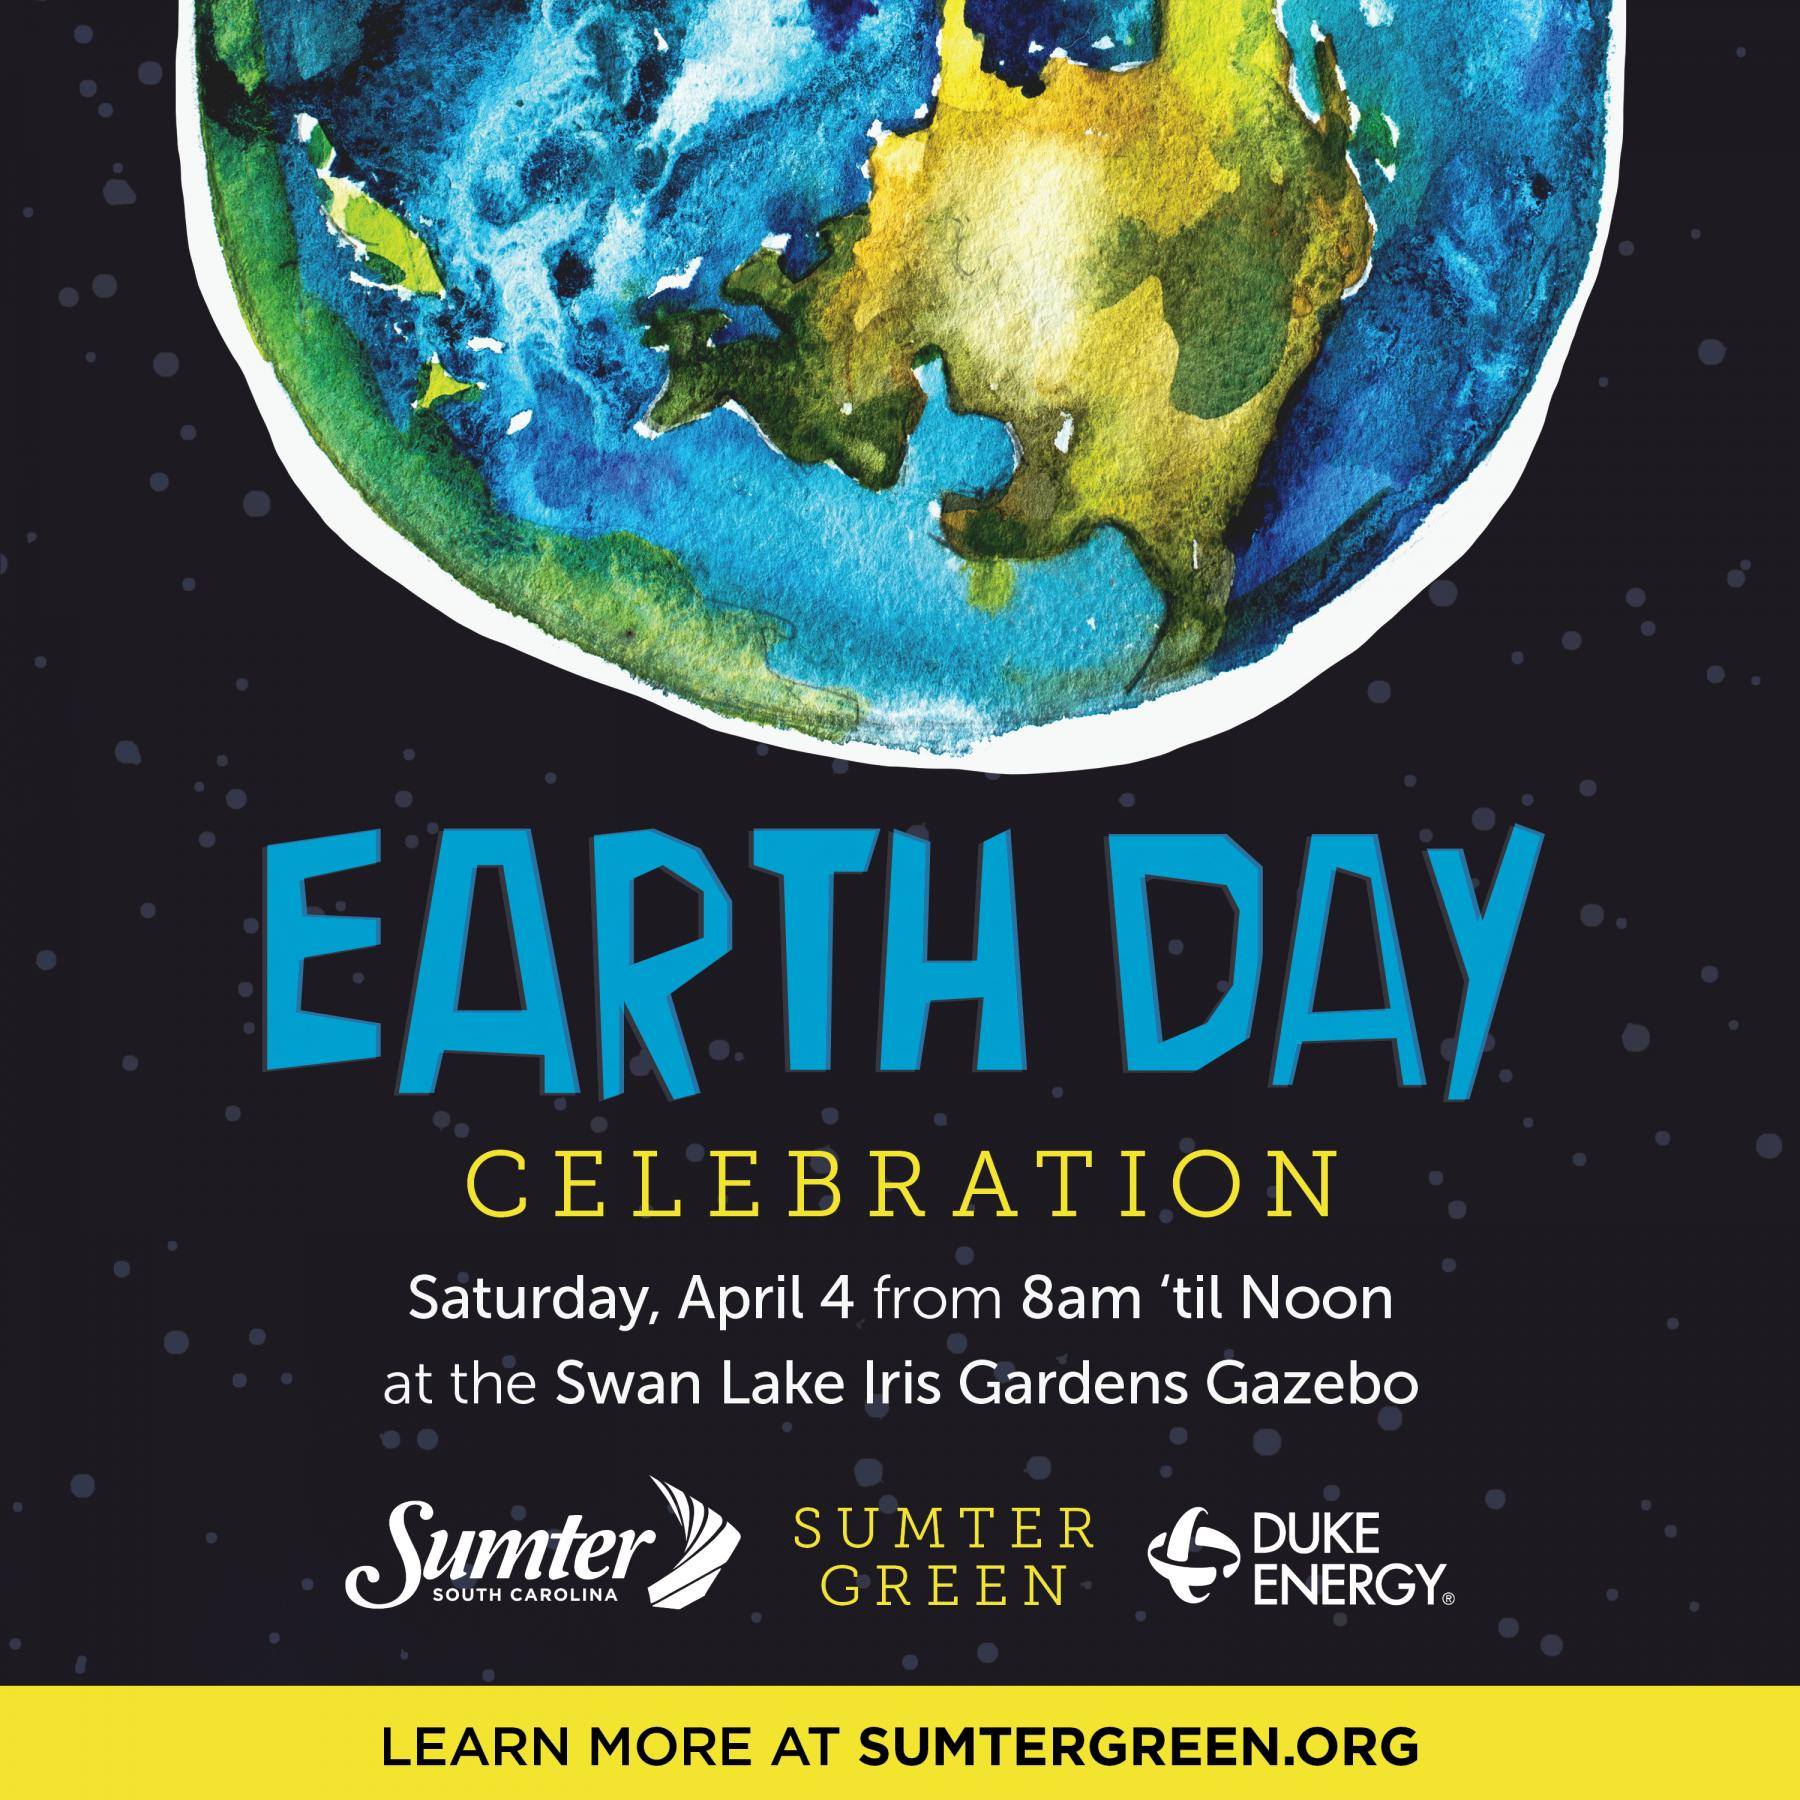 Earth Day, April 4, 2020 from 8am until 12pm